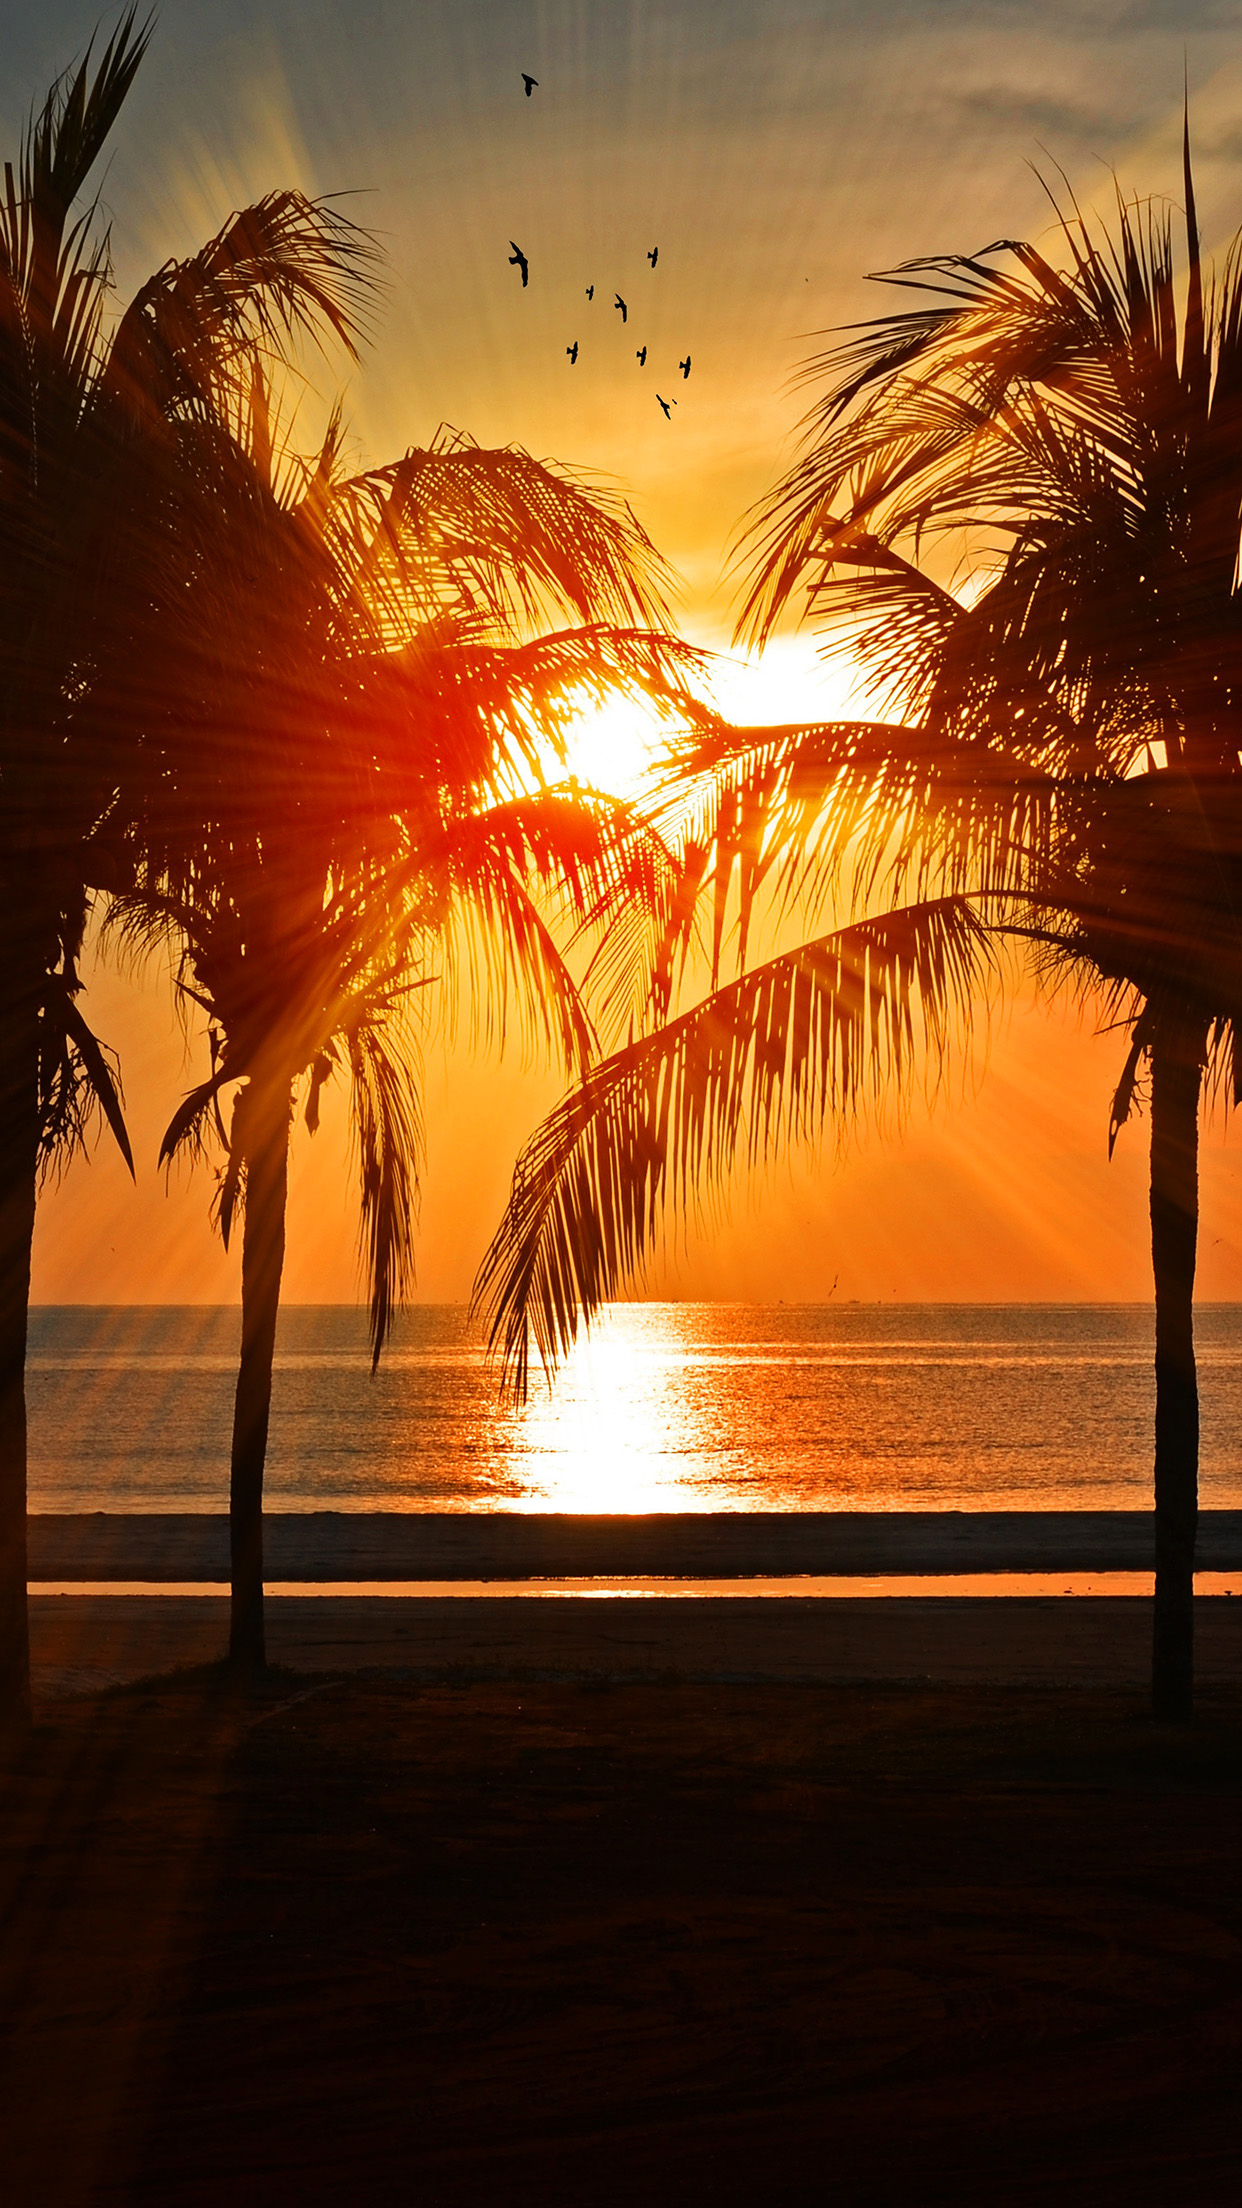 Sinon Cute Wallpaper Nl74 Beach Vacation Summer Night Sunset Red Palm Tree